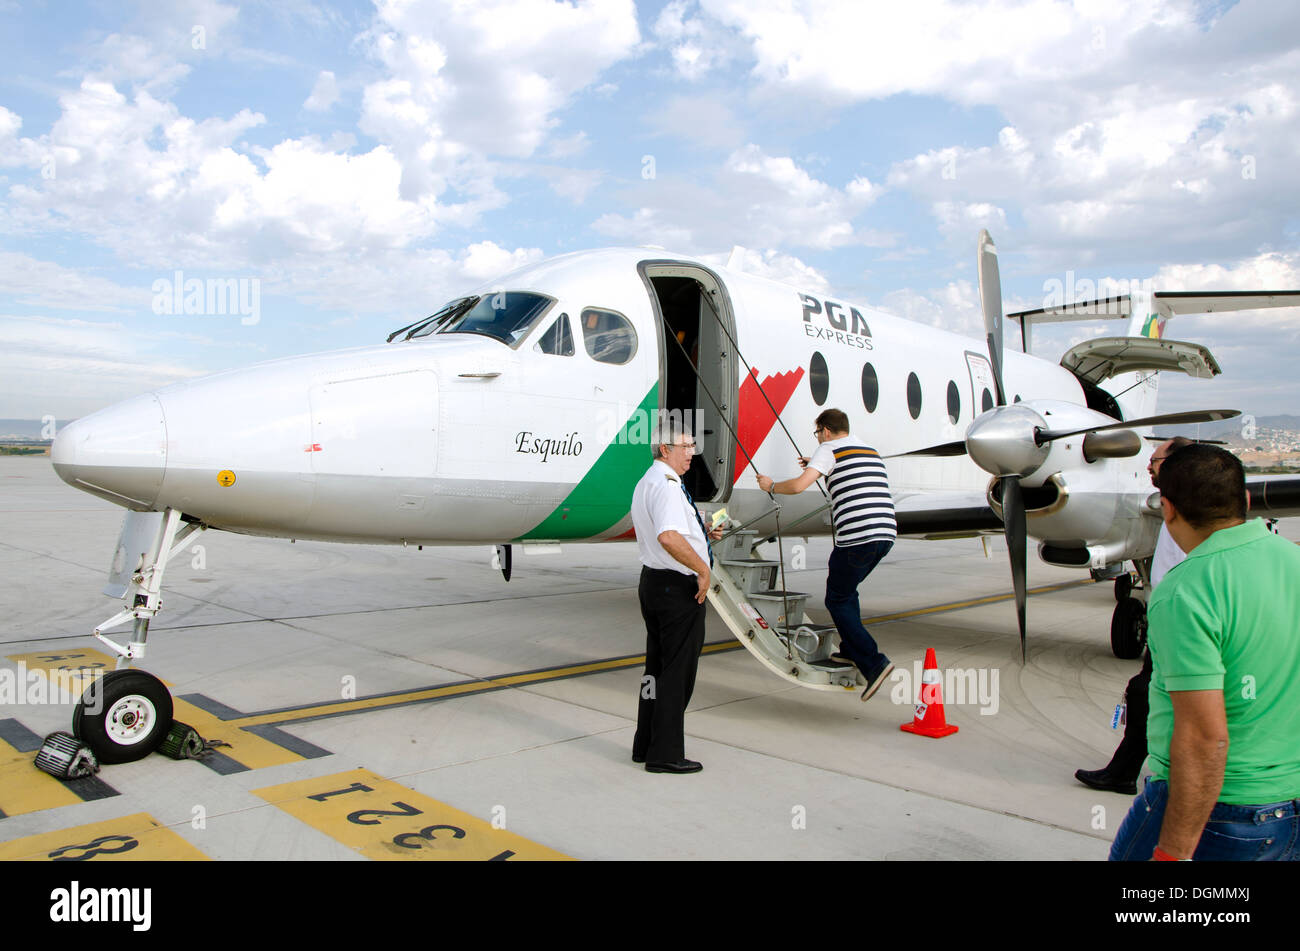 Passengers boarding a Beechcraft 1900D airplane from Tap portugal in parking position next to runway. Malaga, Spain. - Stock Image